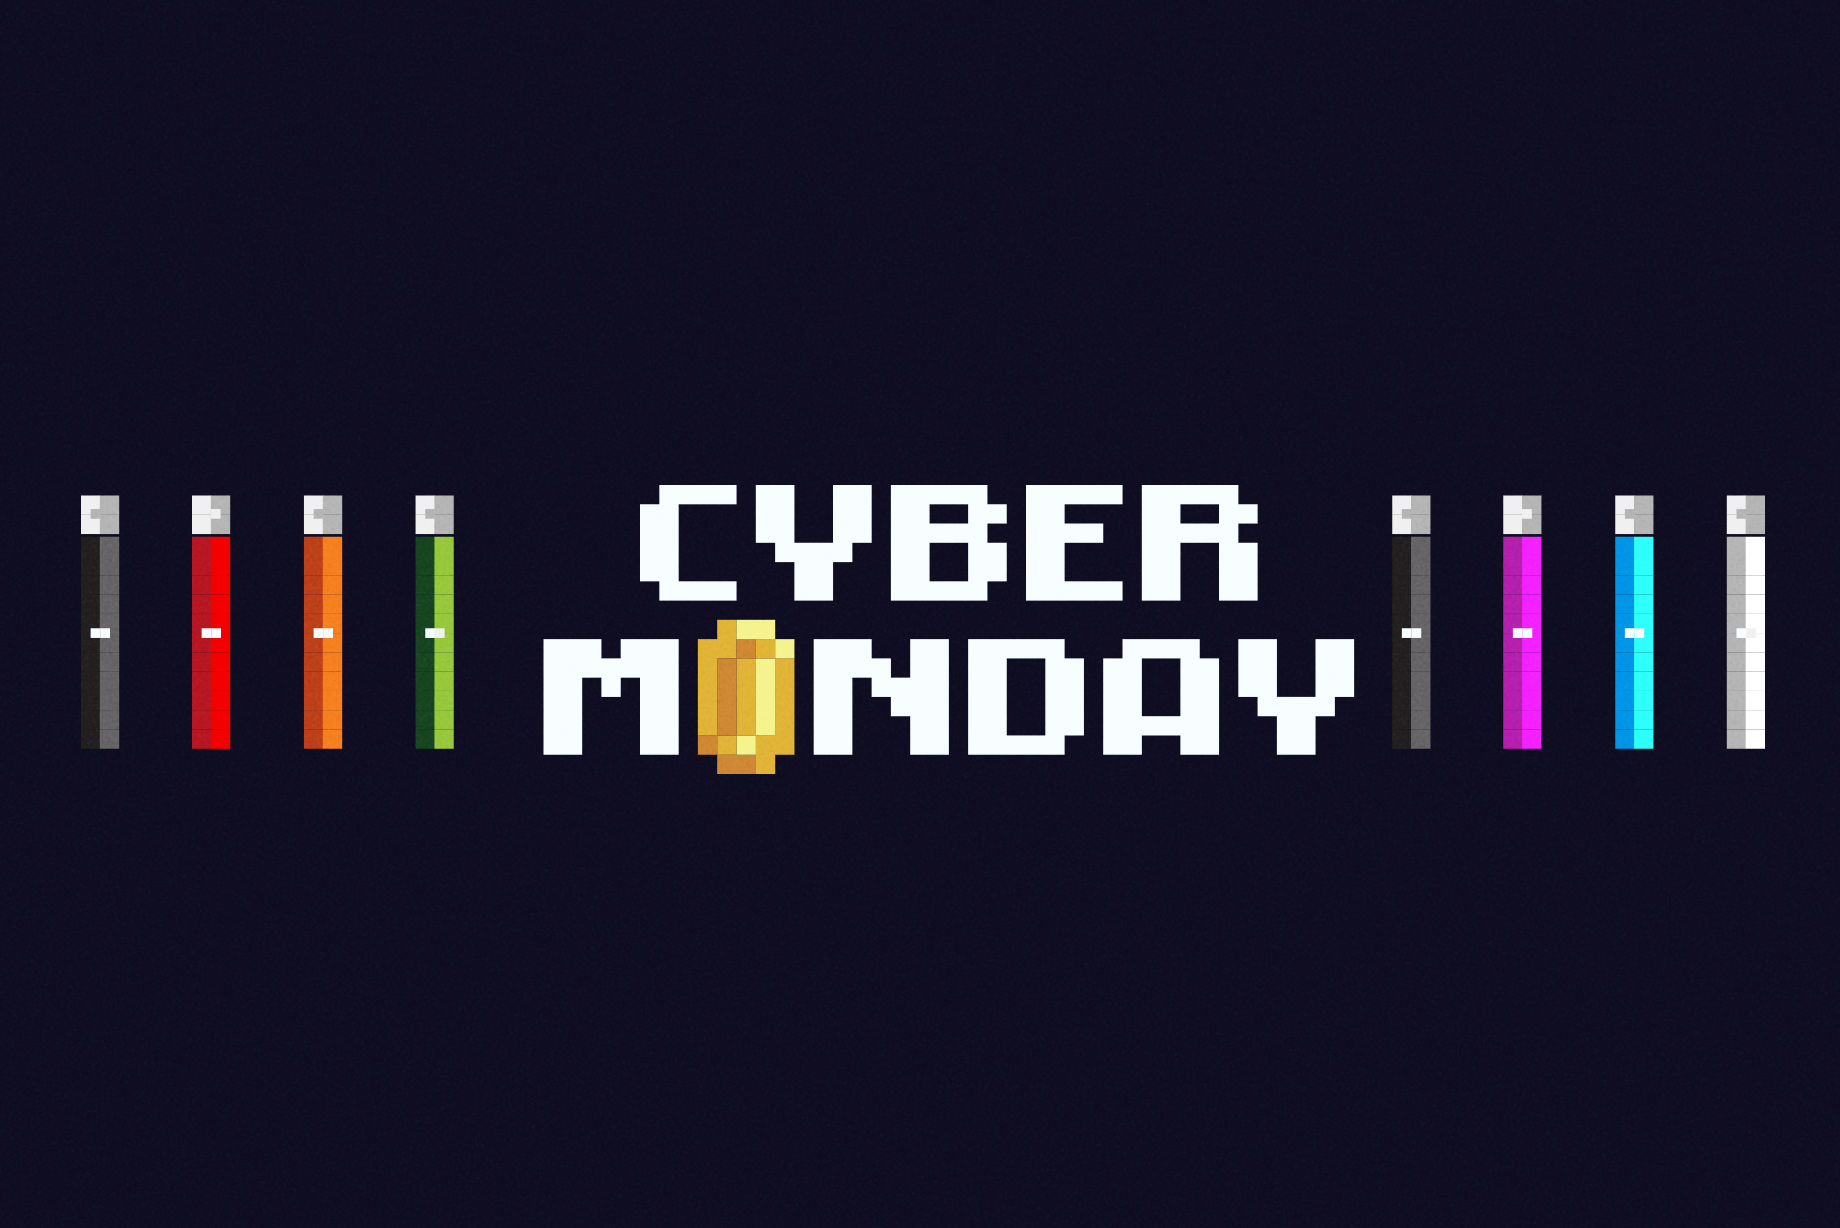 Are you ready for this Cyber Monday STEAL?